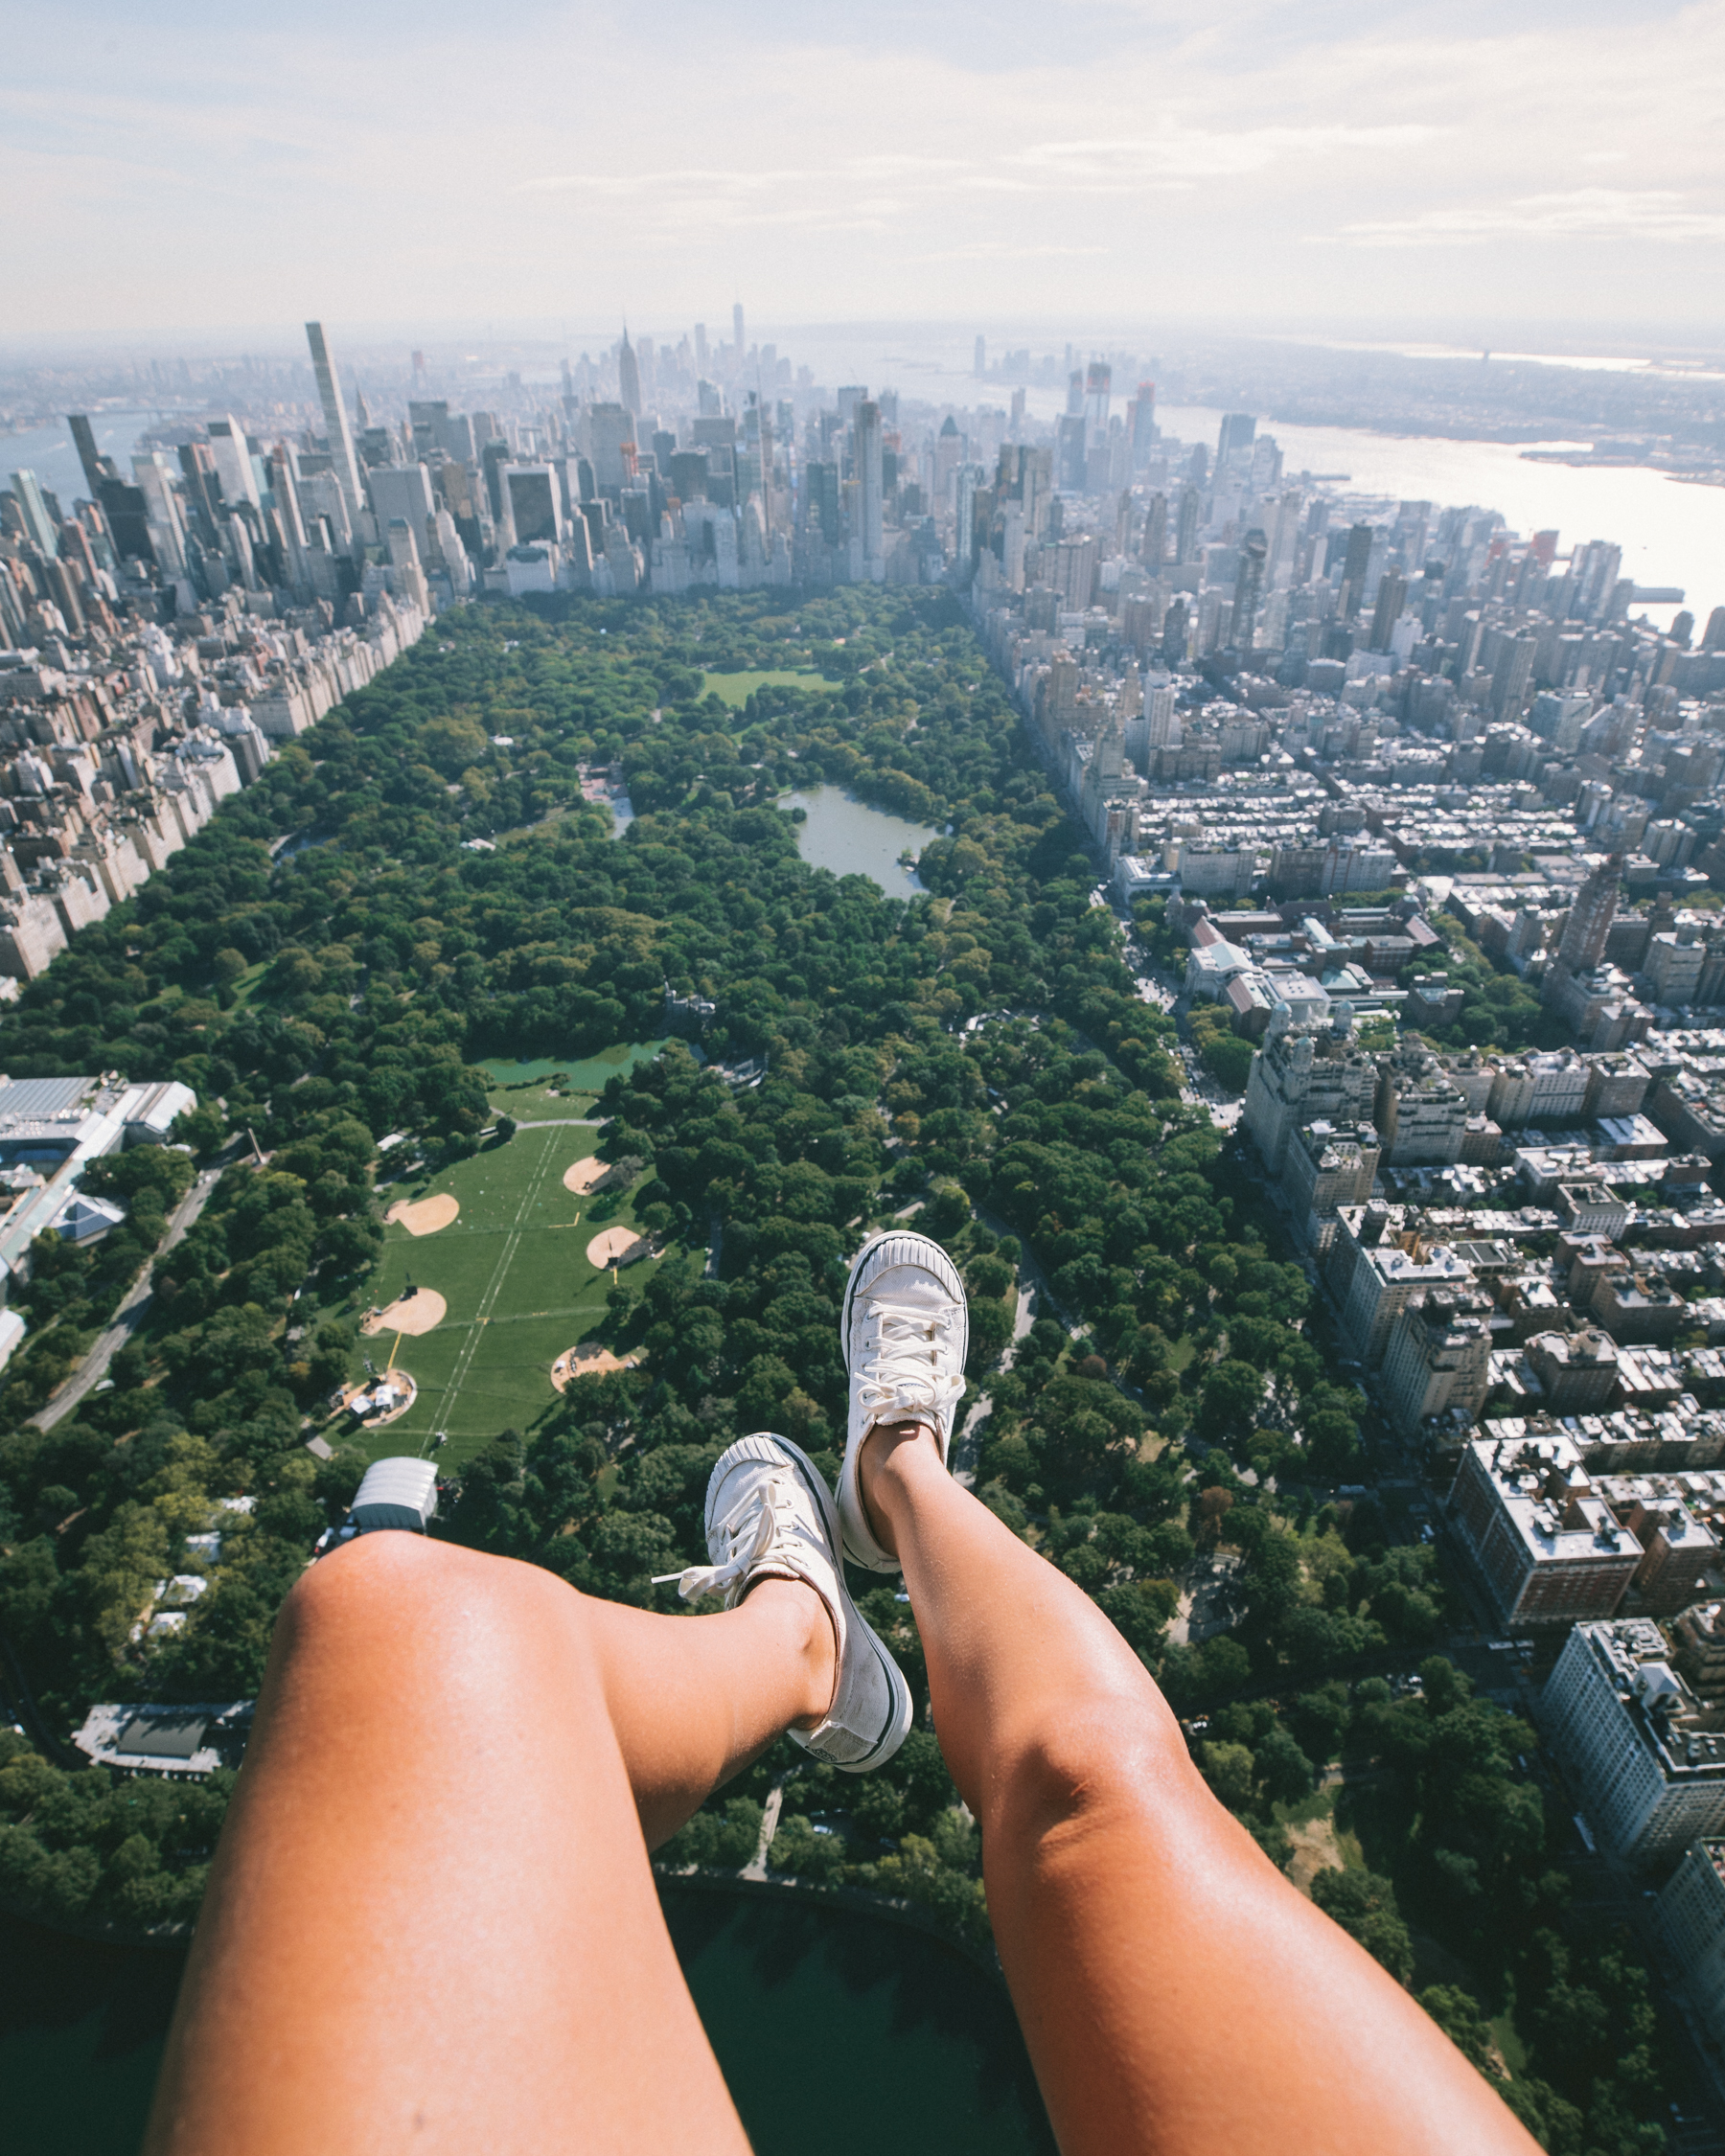 Foot selfie out of the helicopter over Central Park. That clearing to the left of my feet is the area for the concert. I'm harnessed in, don't worry :)